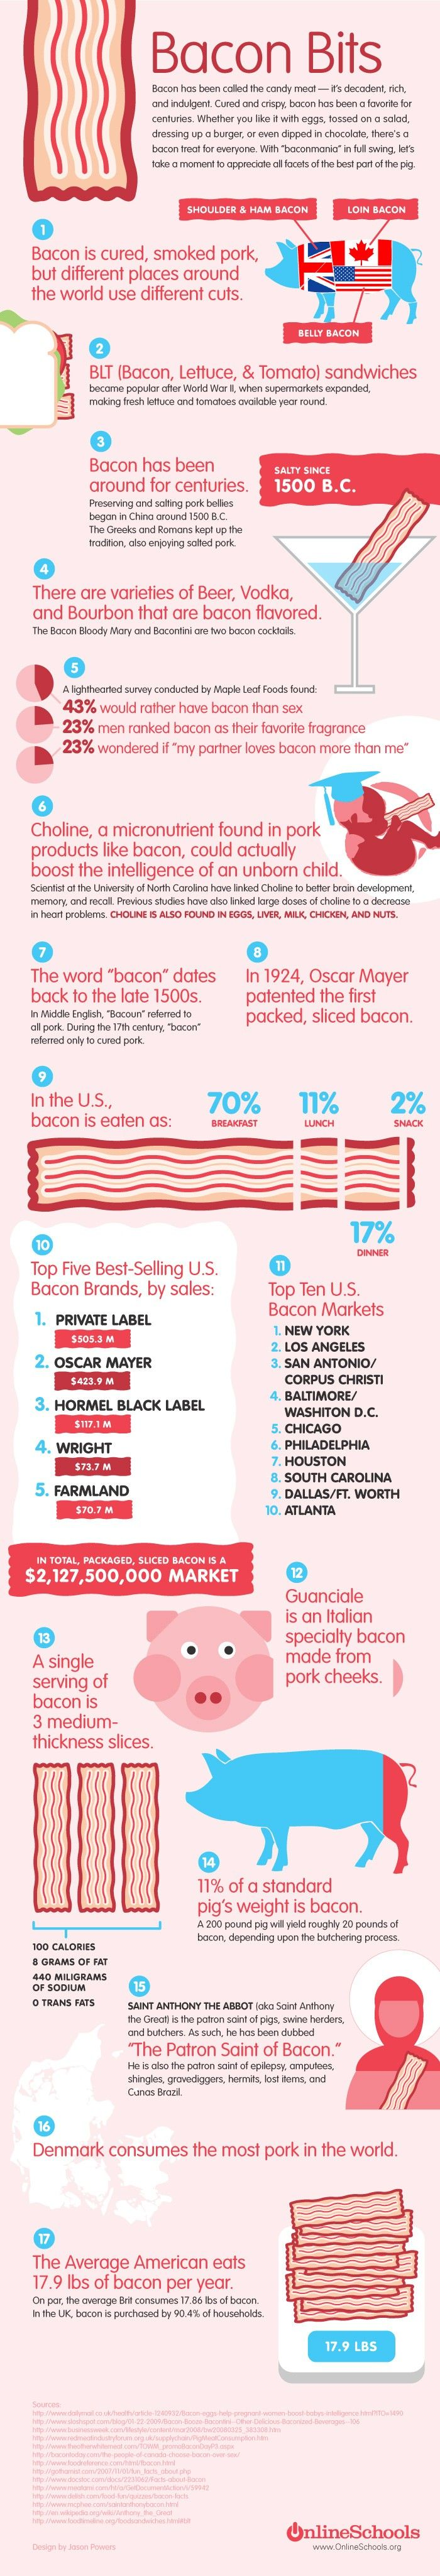 Bacon Facts & Fun Trivia - http://dailyinfographic.com/wp-content/uploads/2010/08/bacon.jpg